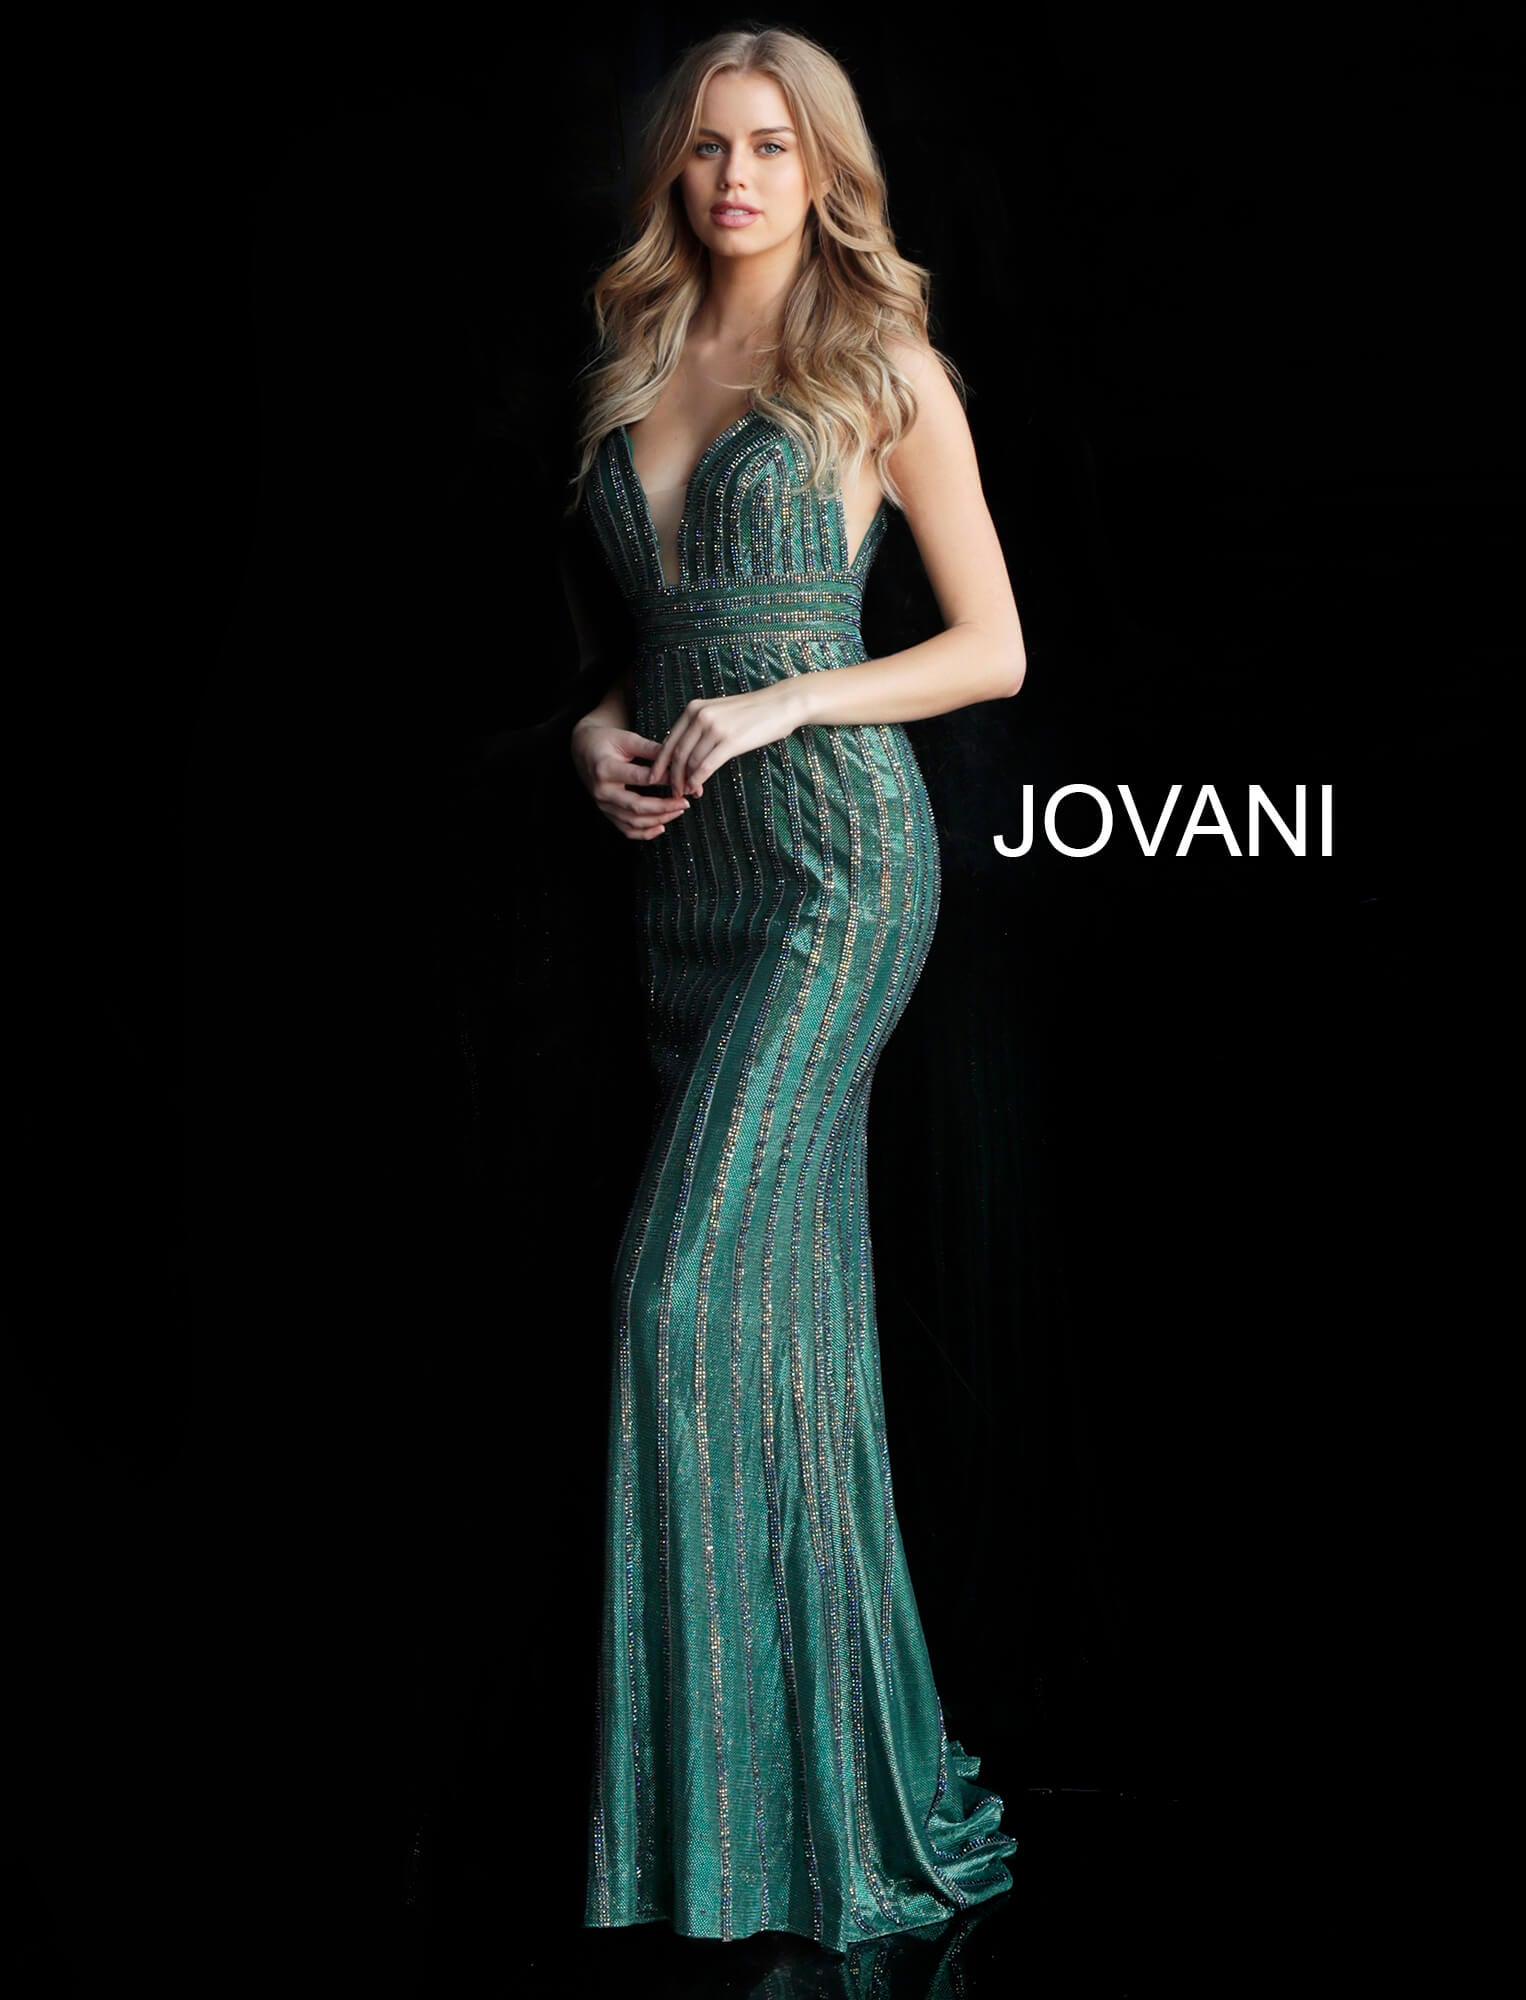 Jovani Green Beaded Gown - Gissings Boutique